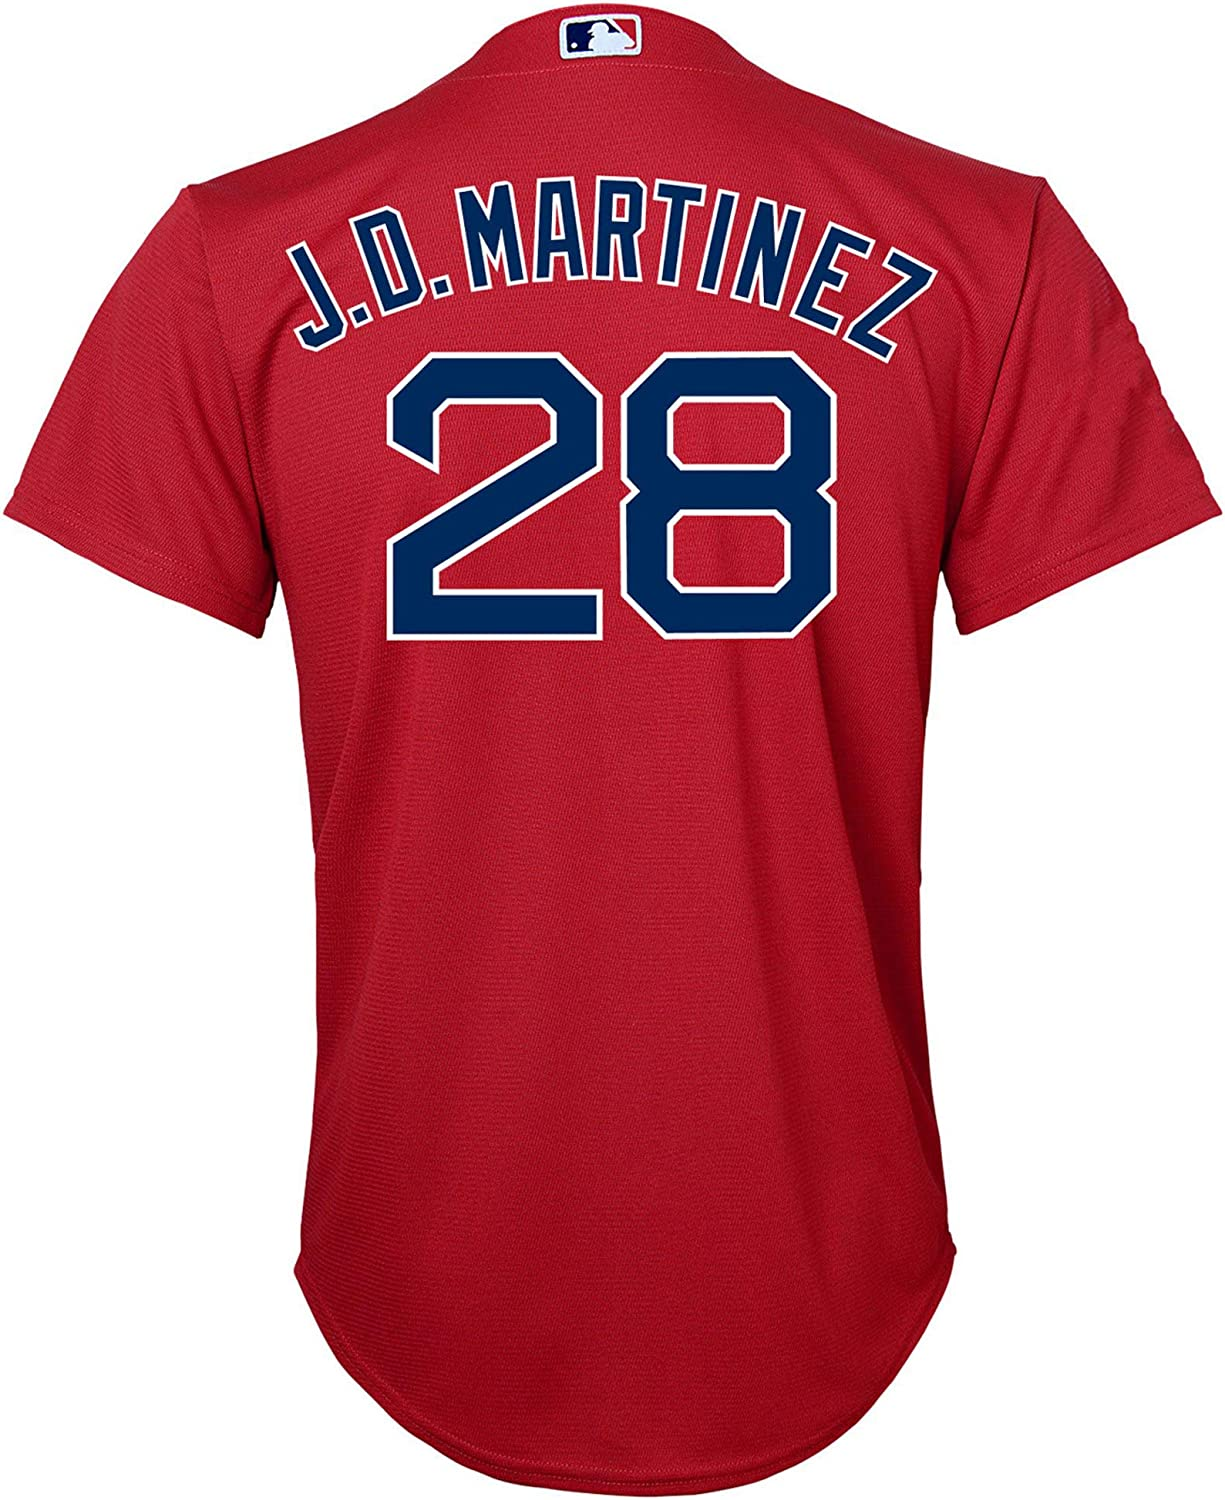 J.D. Martinez Boston Red Sox Cool Repli NEW before selling High order Base Alternate Youth